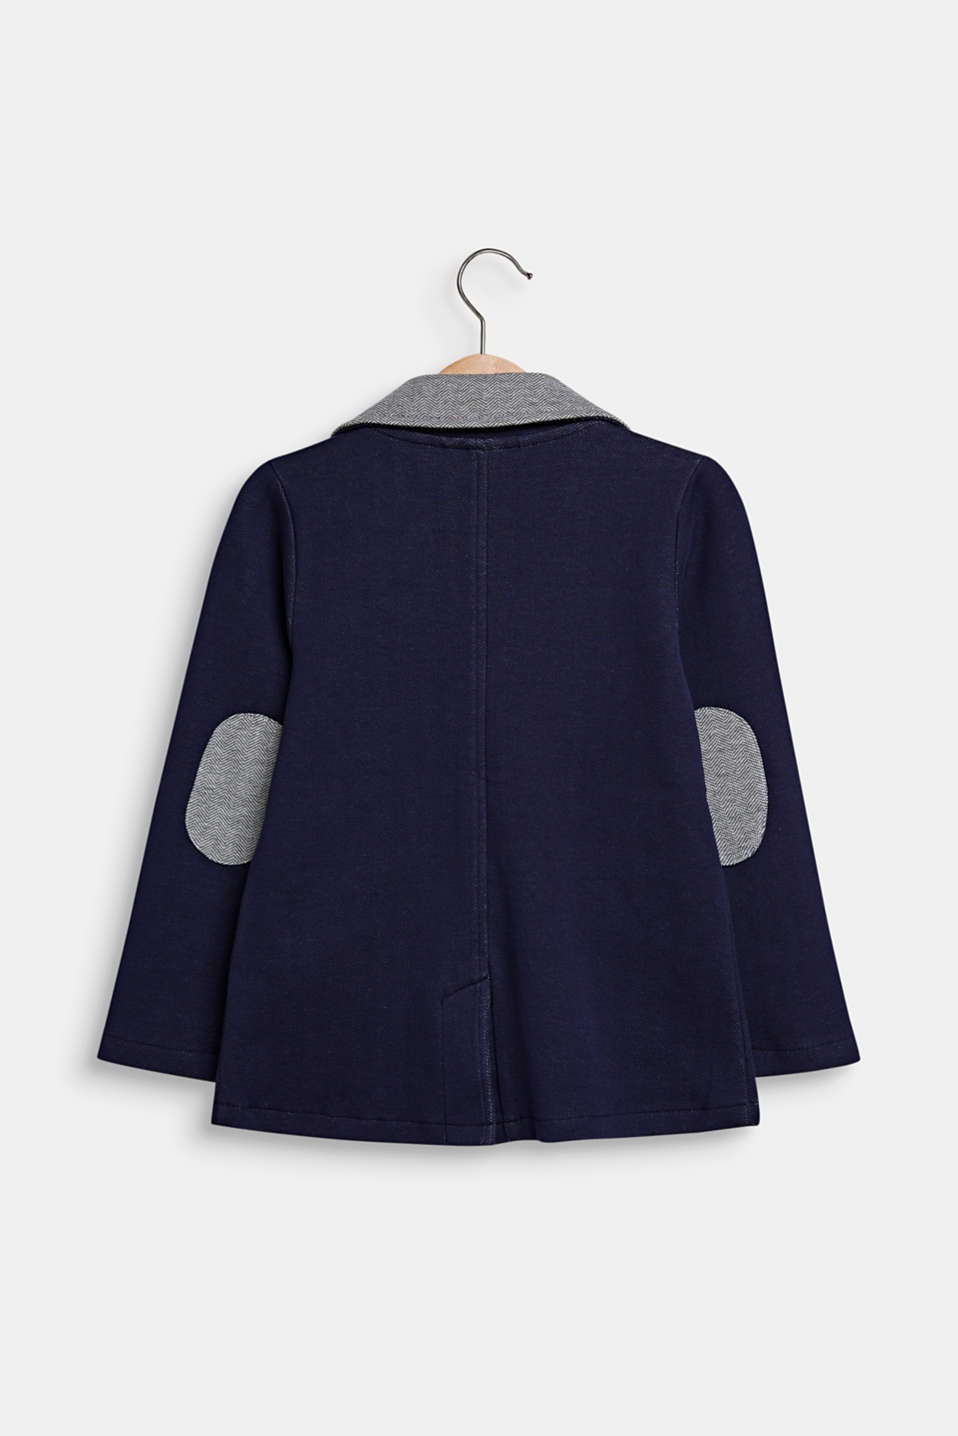 Sweatshirt fabric blazer with elbow patches, ULTRAMARINE, detail image number 1